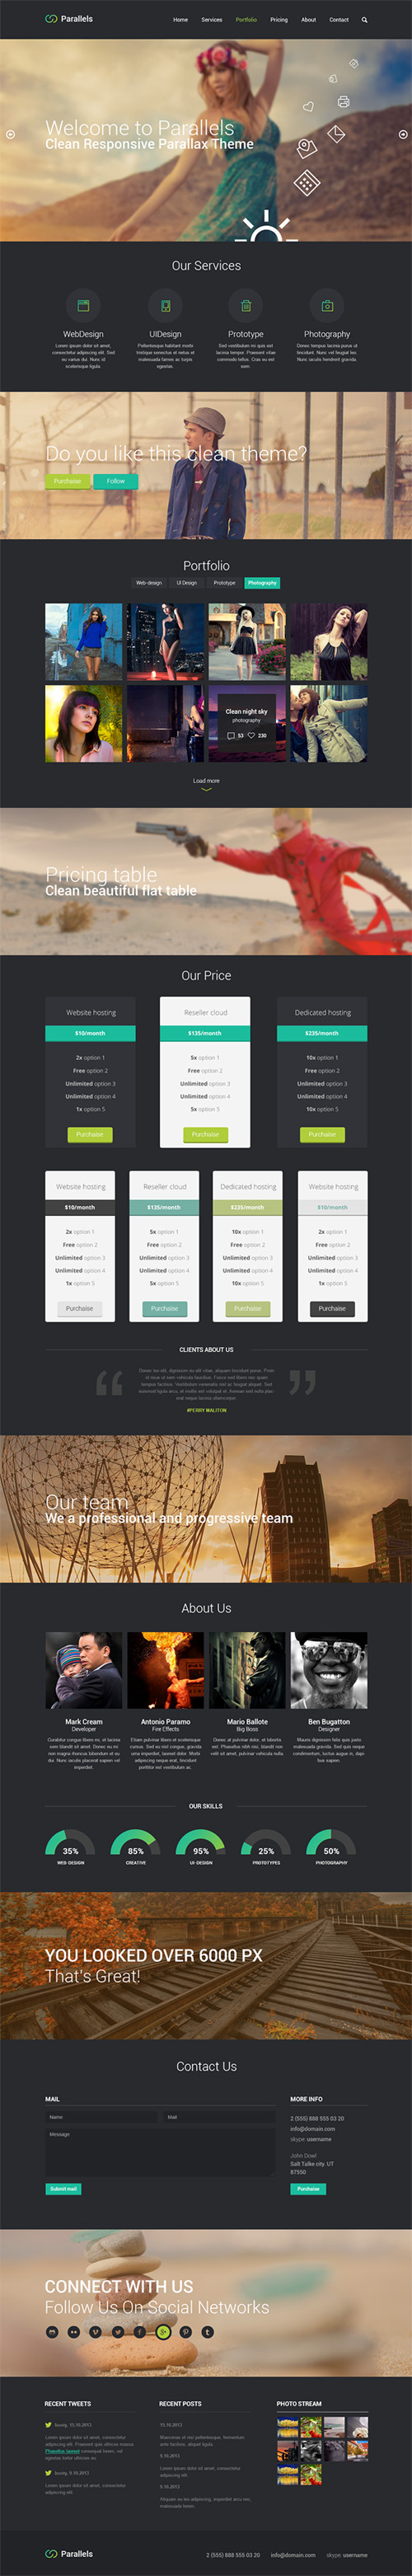 Free PSD Responsive Template PSD files